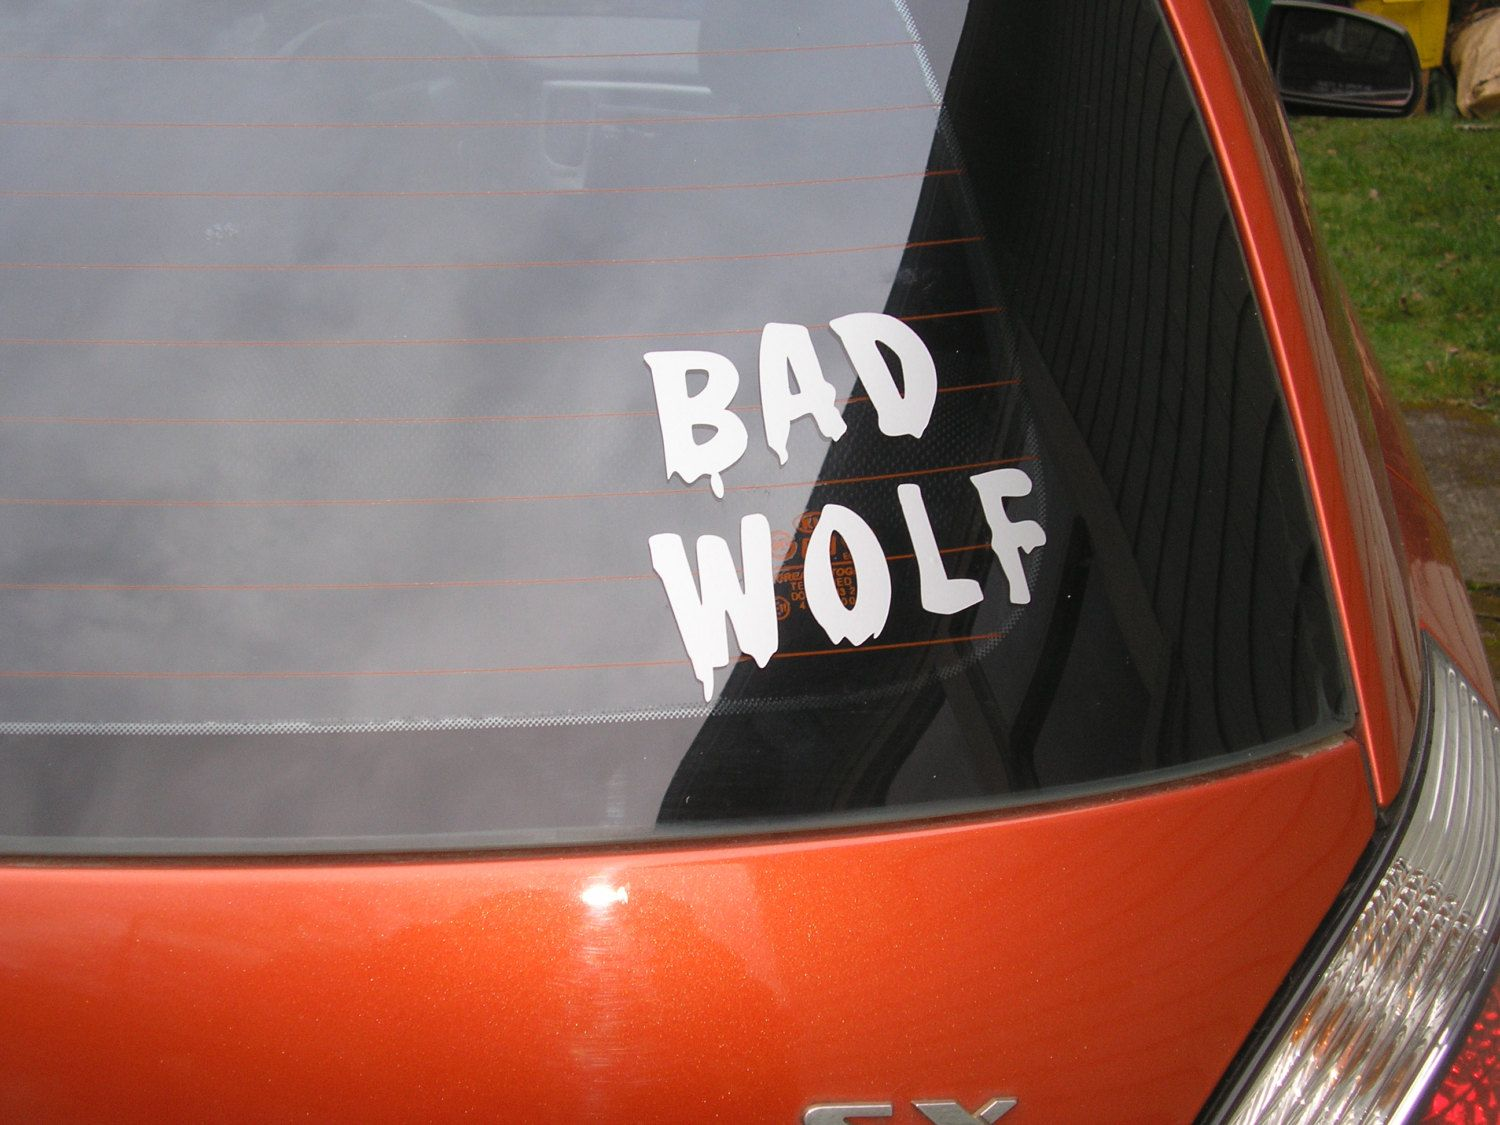 Doctor Who Car Bad Wolf Vinyl Decal Vehicle Sticker Silver 5 00 Via Etsy Bad Wolf Doctor Who Doctor [ 1125 x 1500 Pixel ]